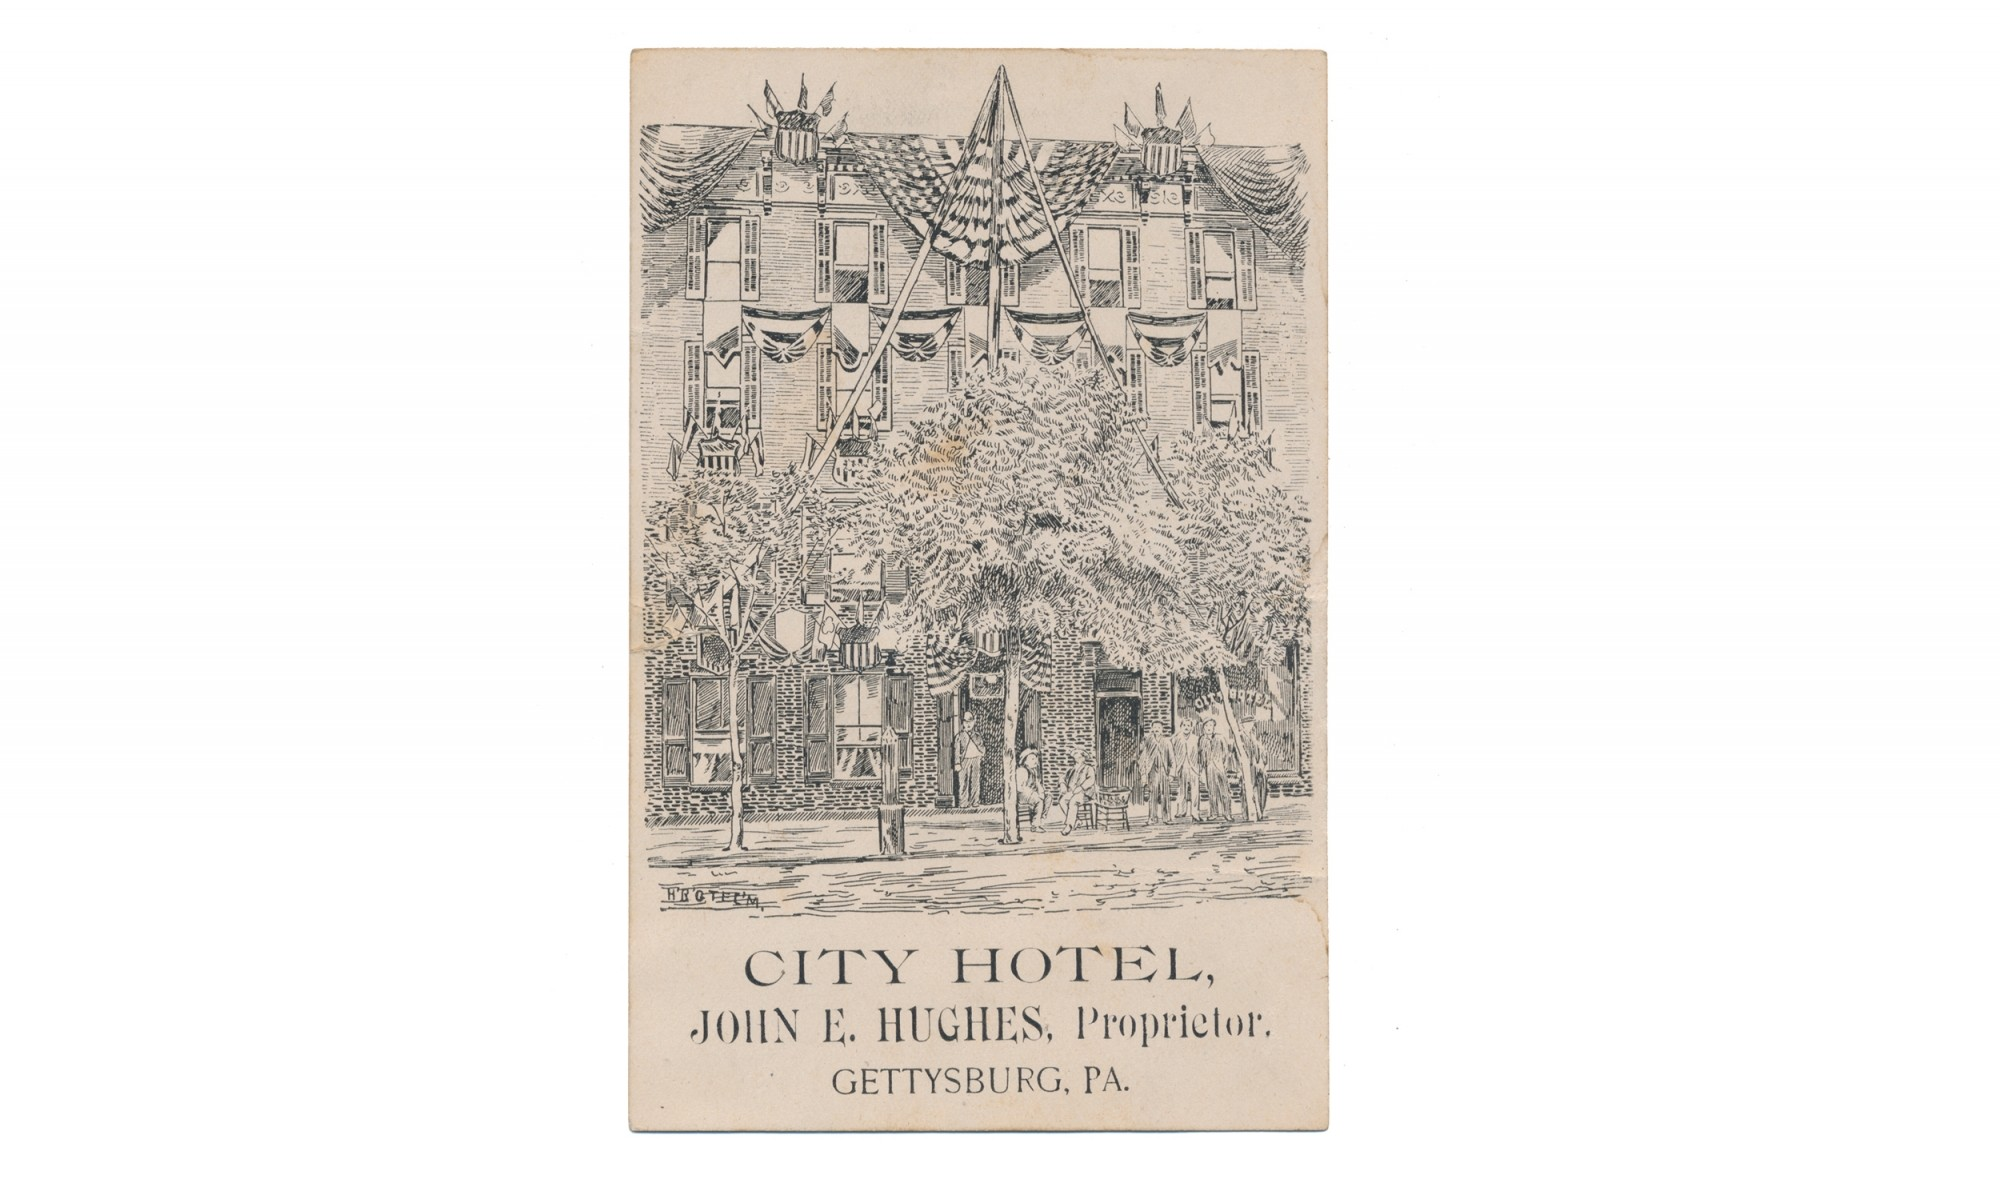 ADVERTISING CARD FOR CITY HOTEL - GETTYSBURG